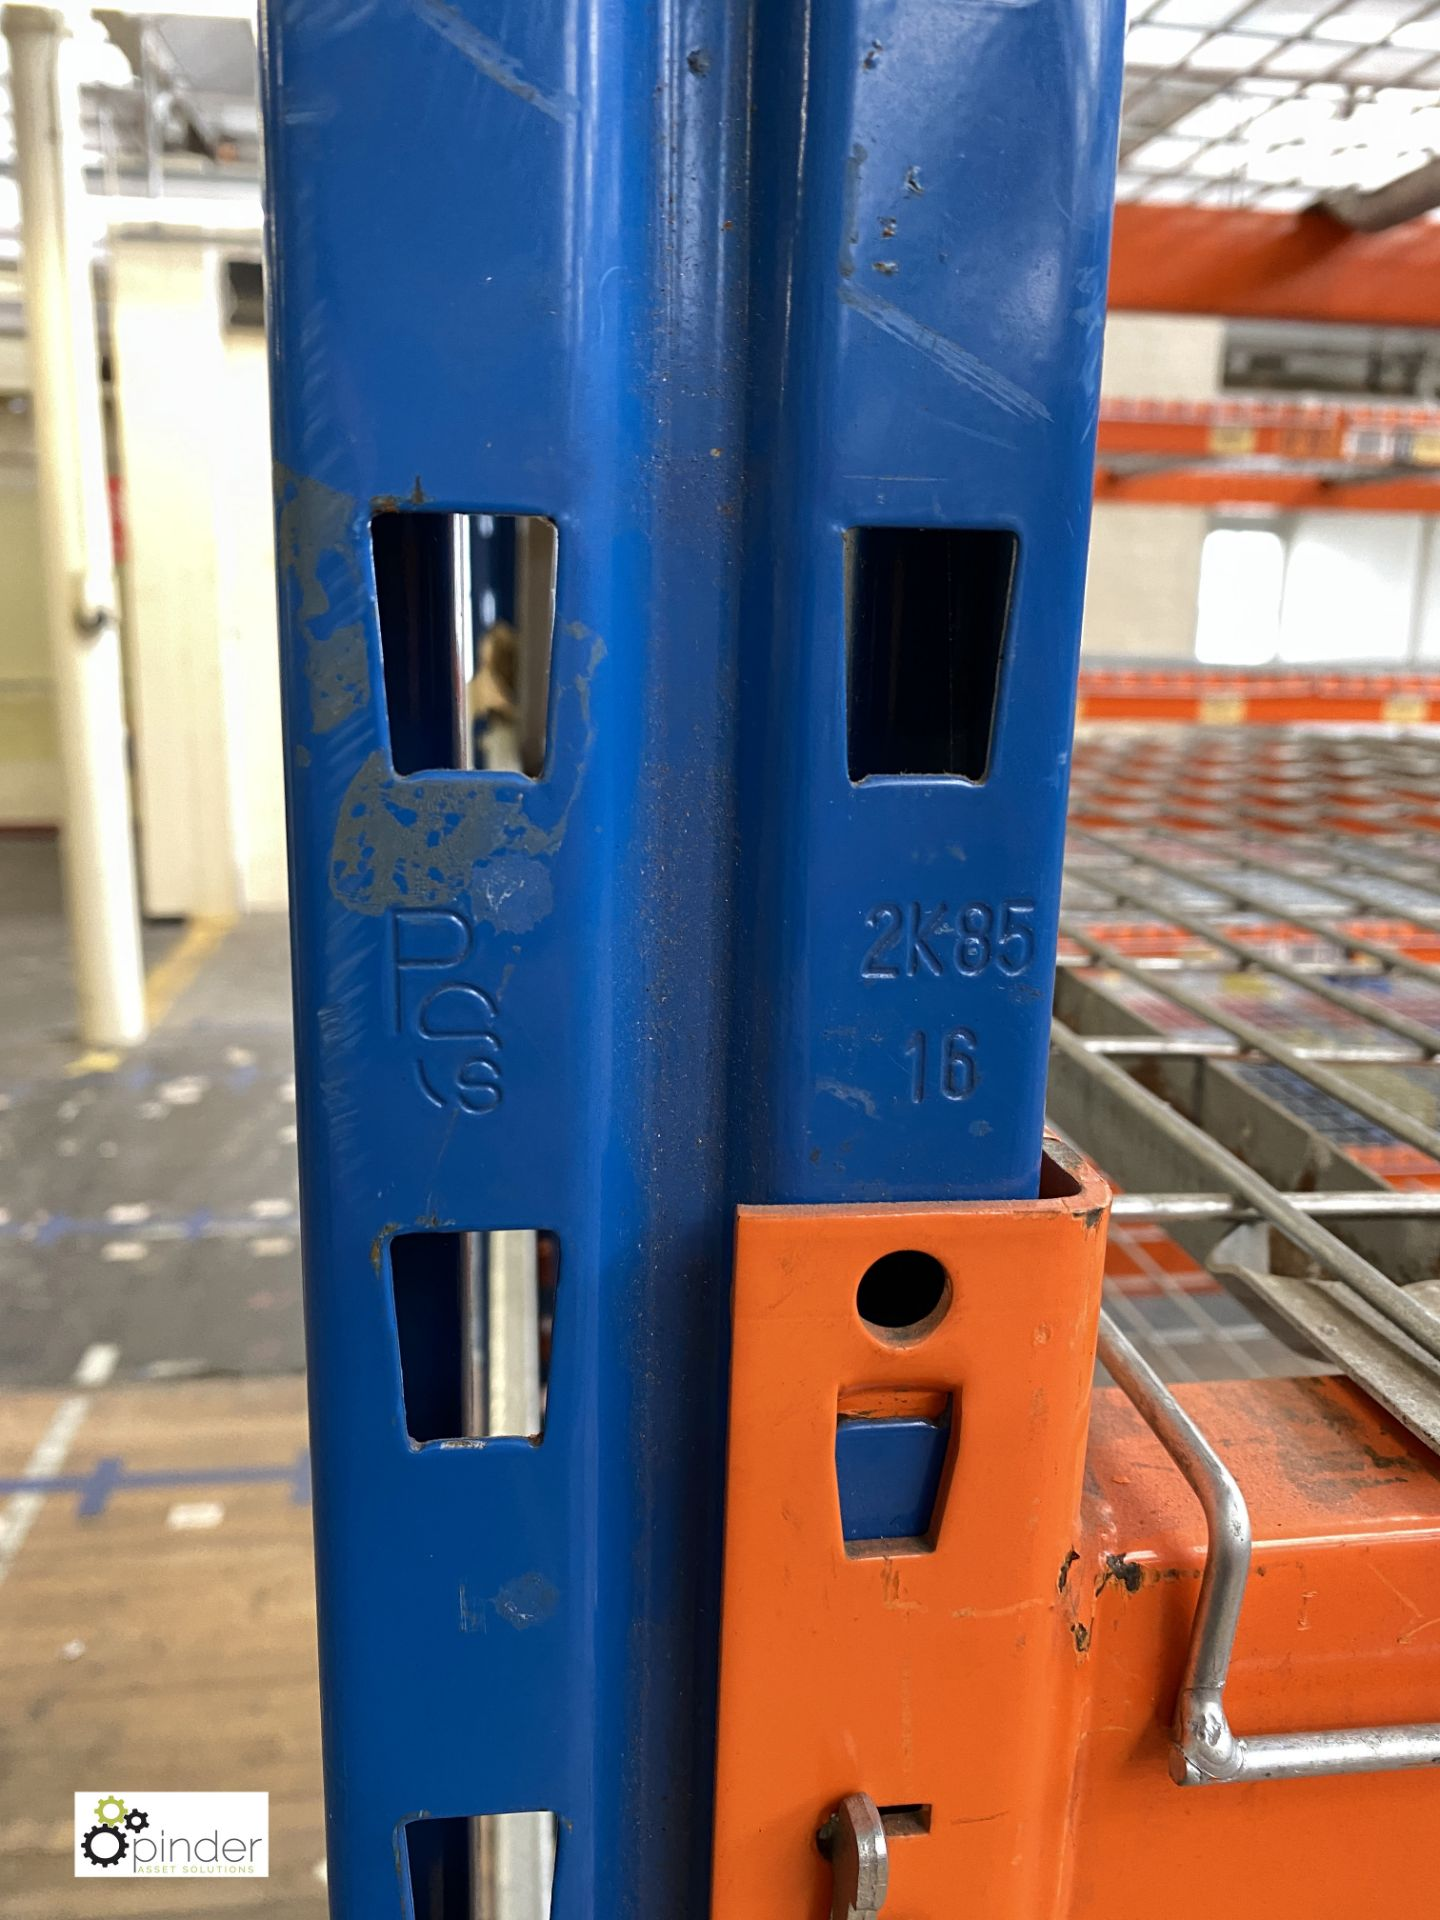 4 bays PSS 2K85 16 boltless Stock Racking, comprising 5 uprights 2400mm x 1200mm, 32 beams 2700mm, - Image 5 of 5